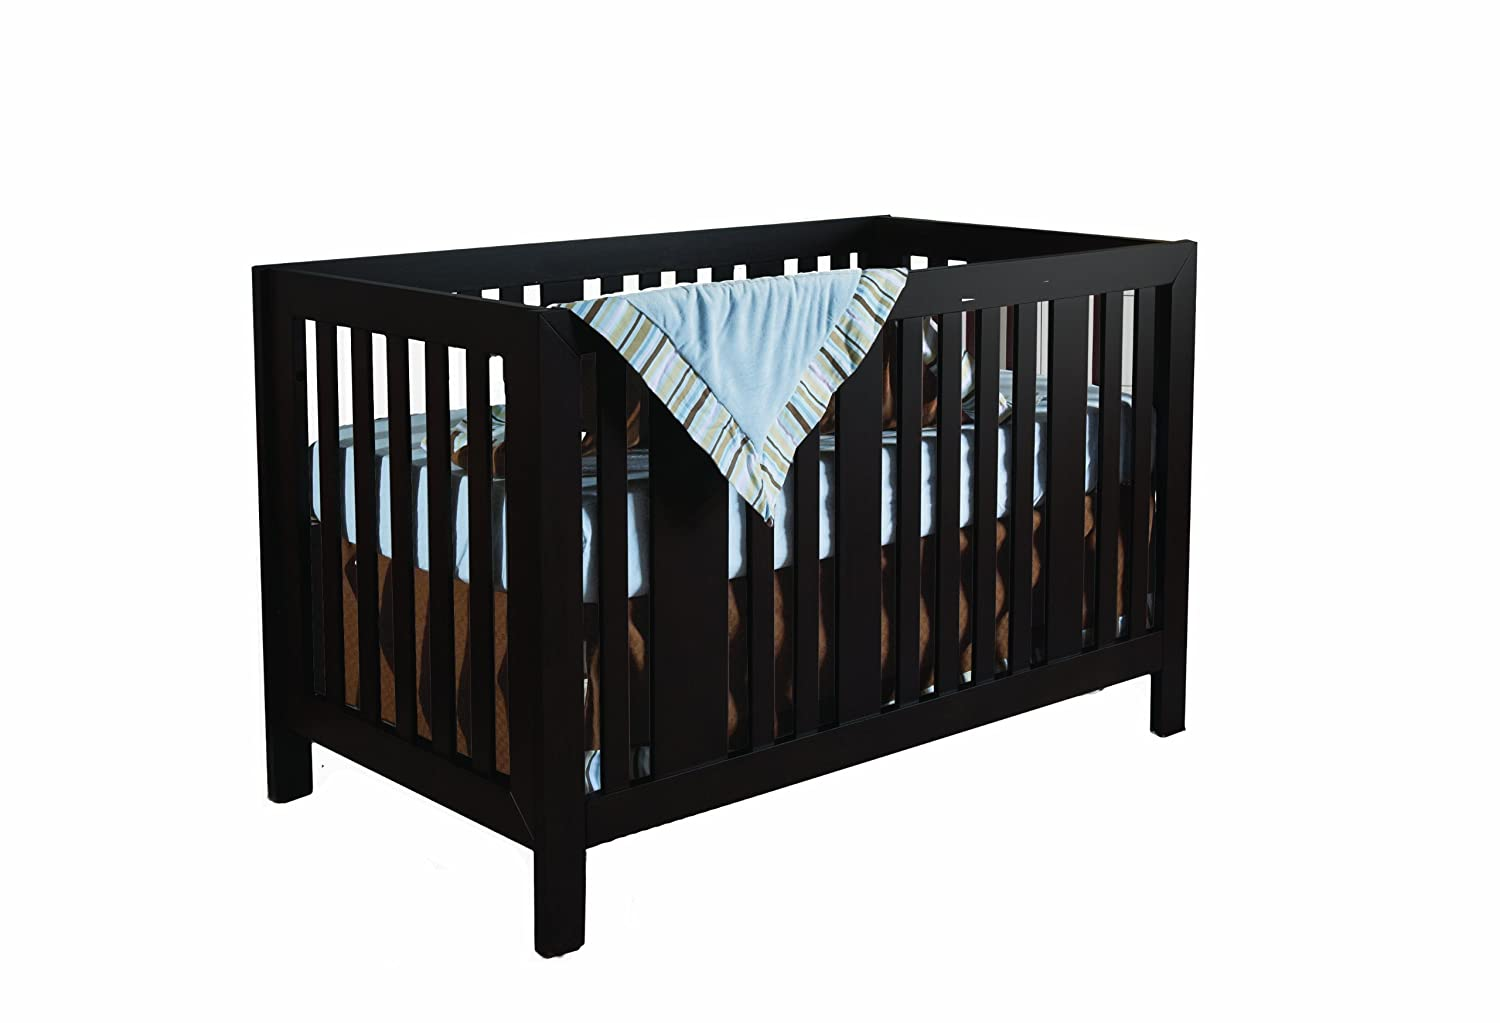 Pali crib for sale used - Amazon Com Pali Imperia Forever Crib Mocacchino Convertible Cribs Baby